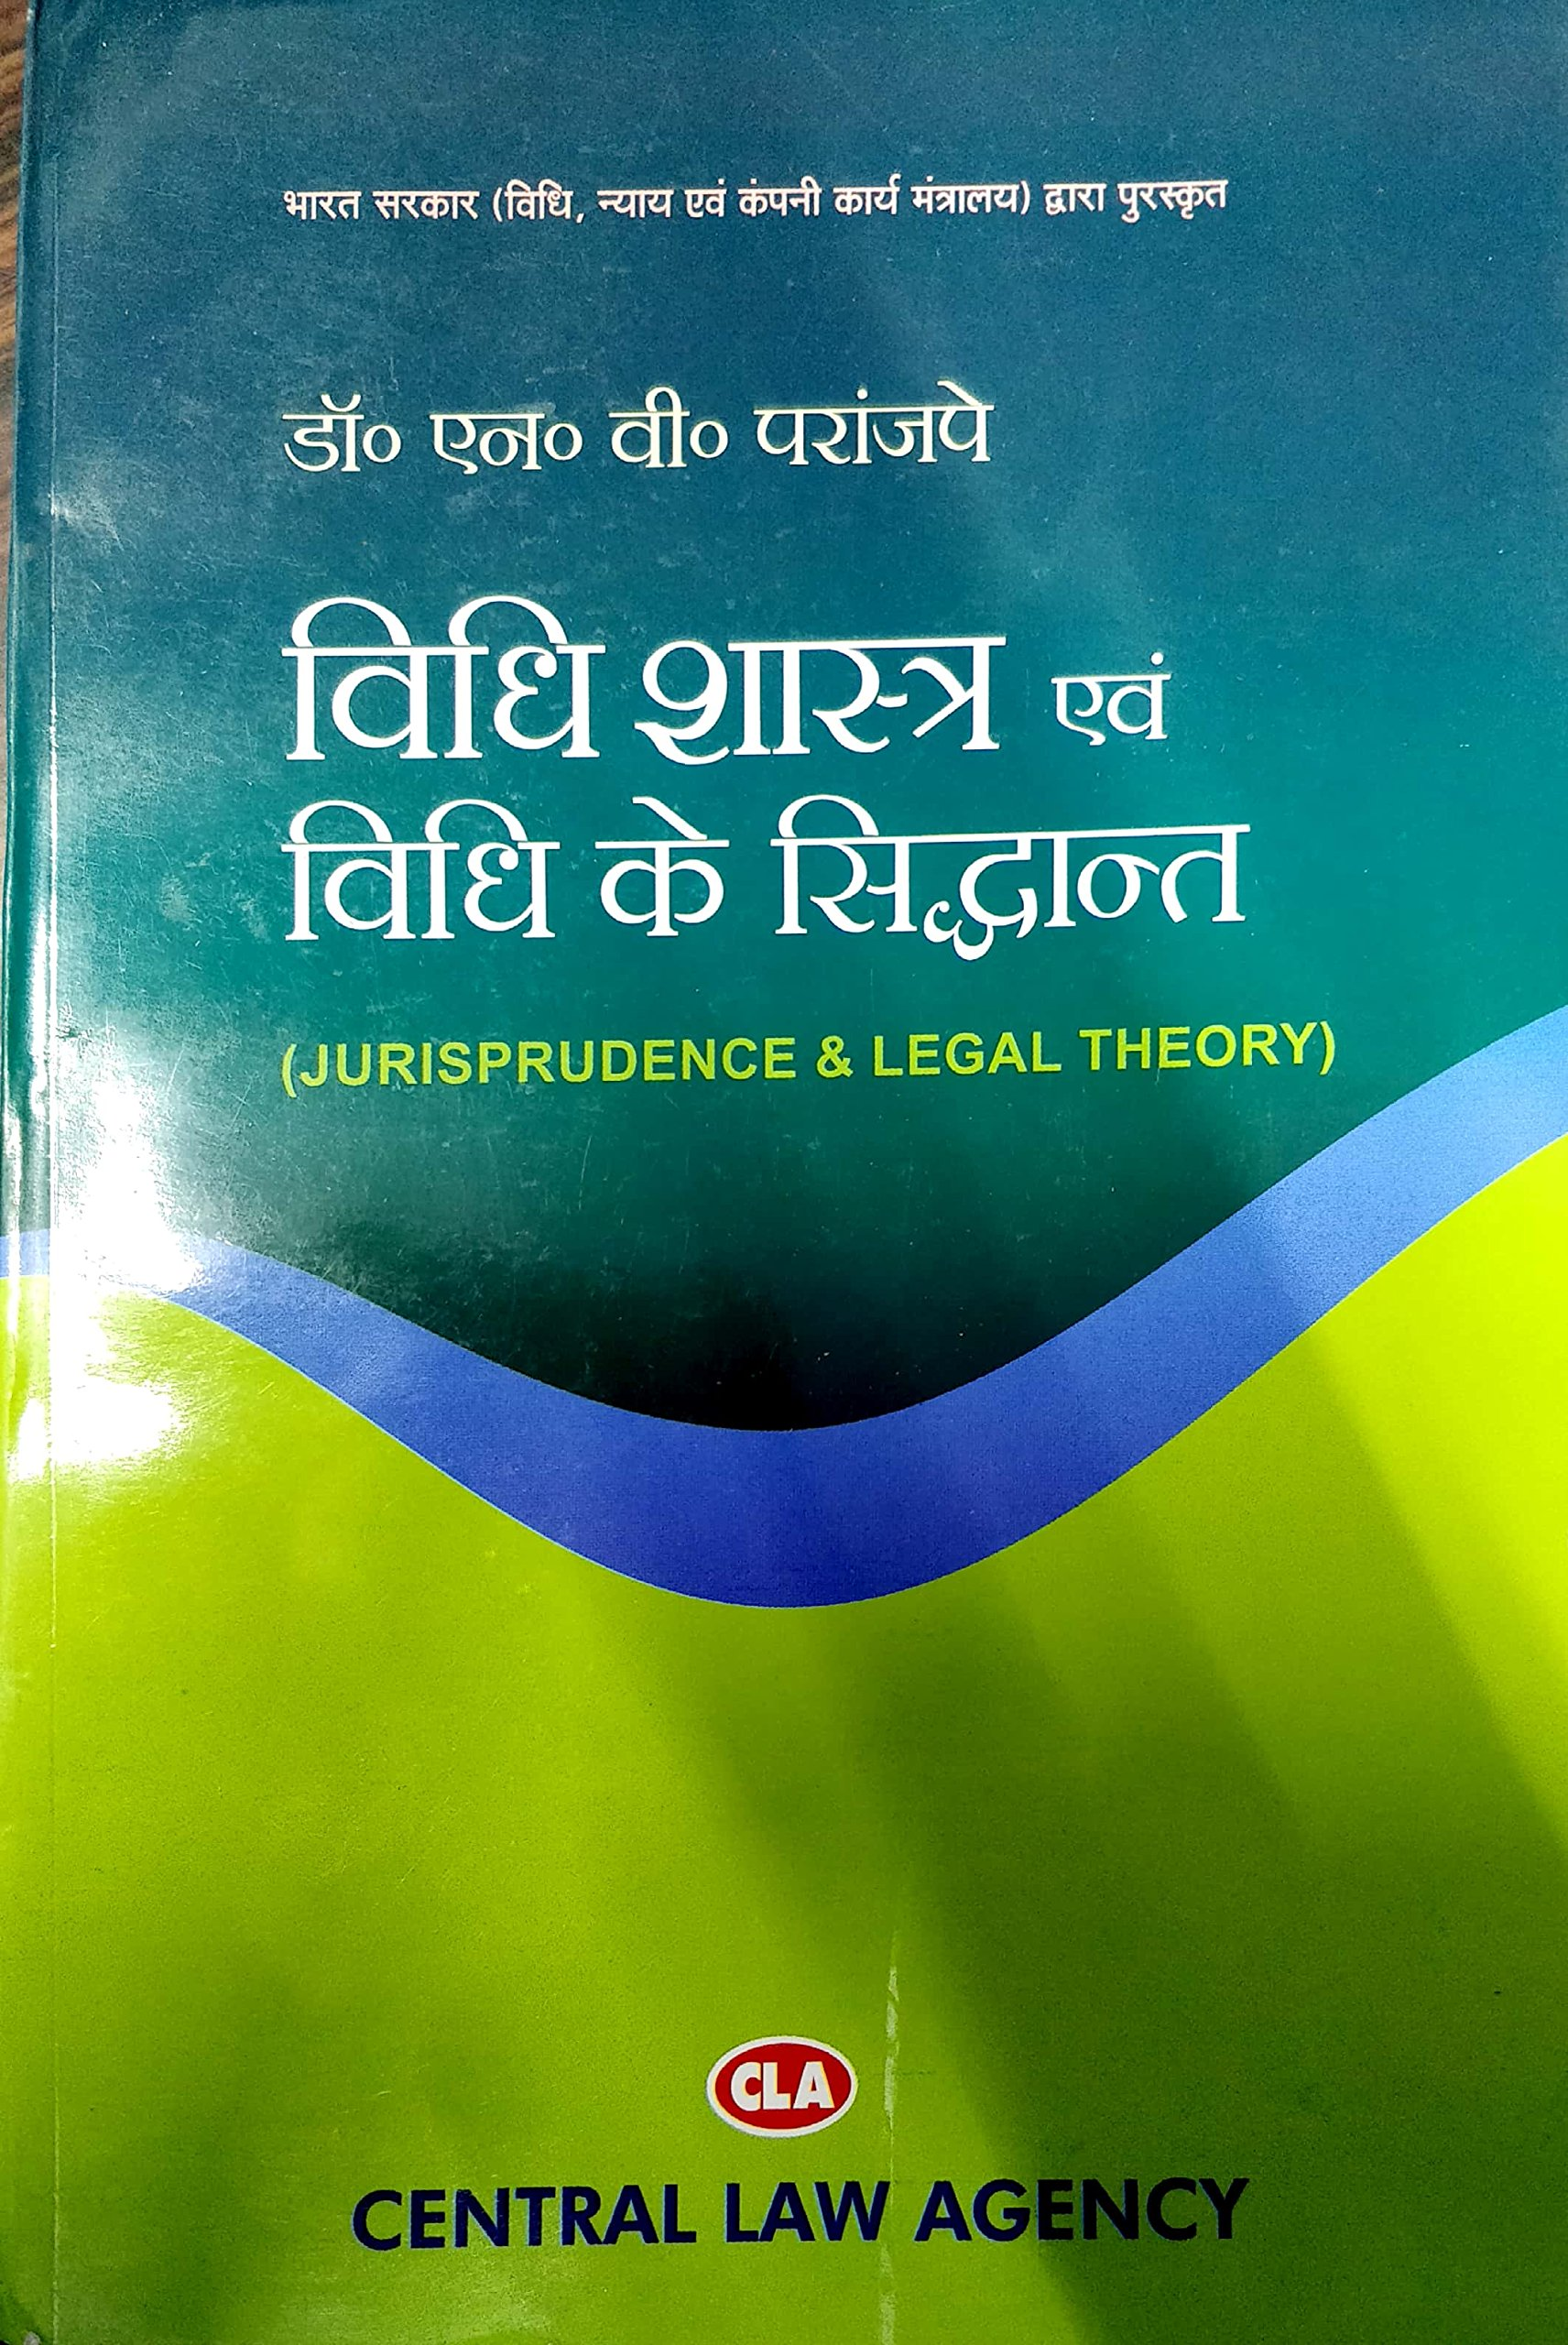 Buy Jurisprudence & Legal Theory (in hindi) Book Online at Low ...